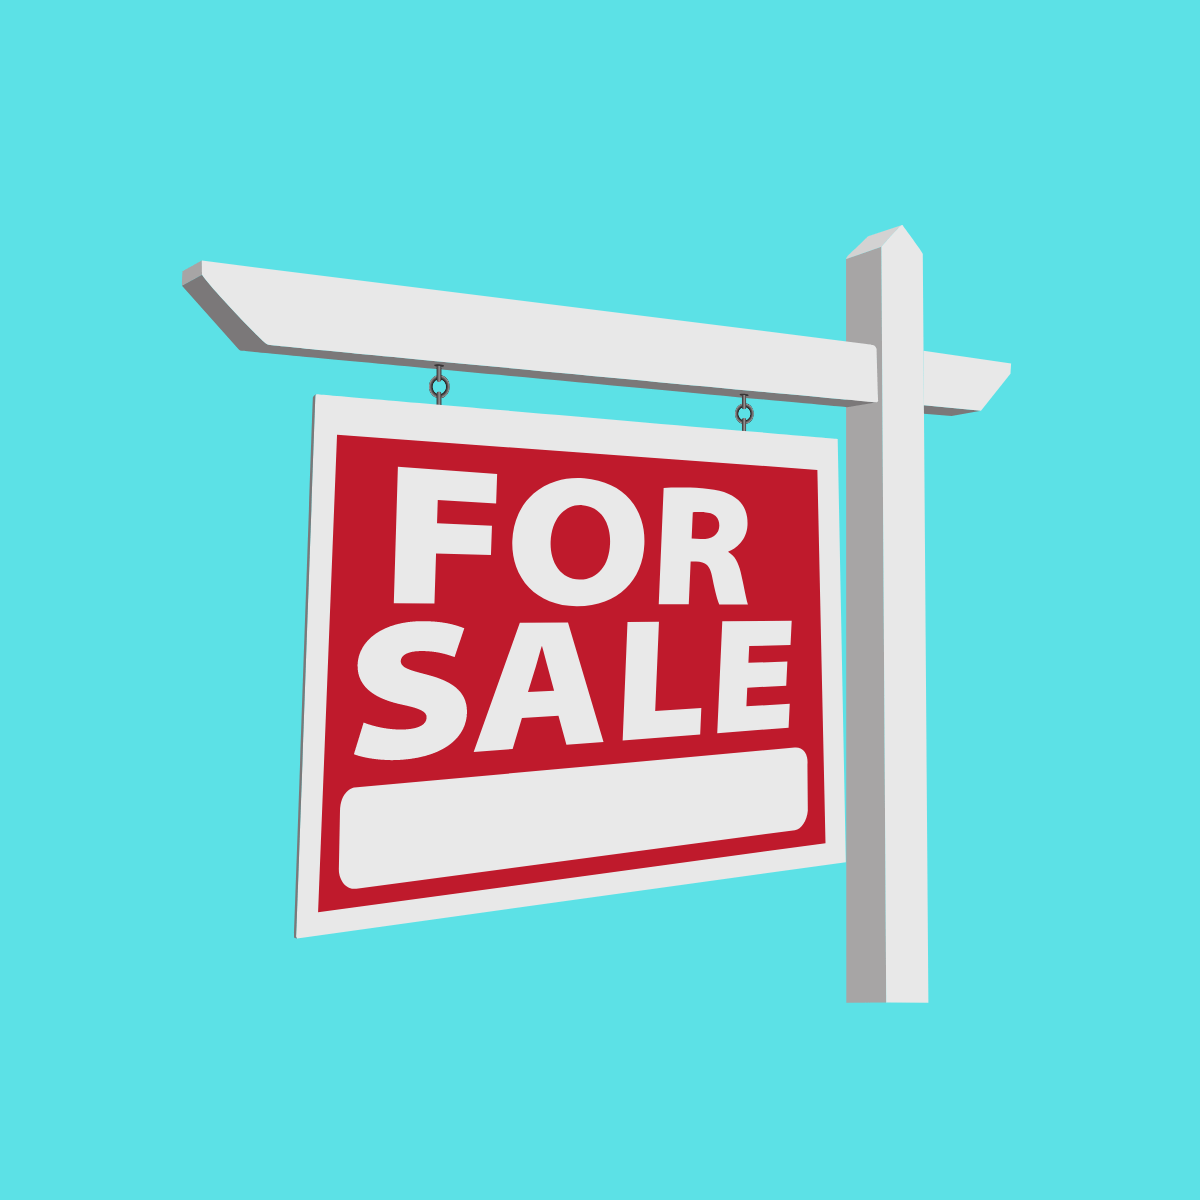 3 Things to Consider When Selling Your Home